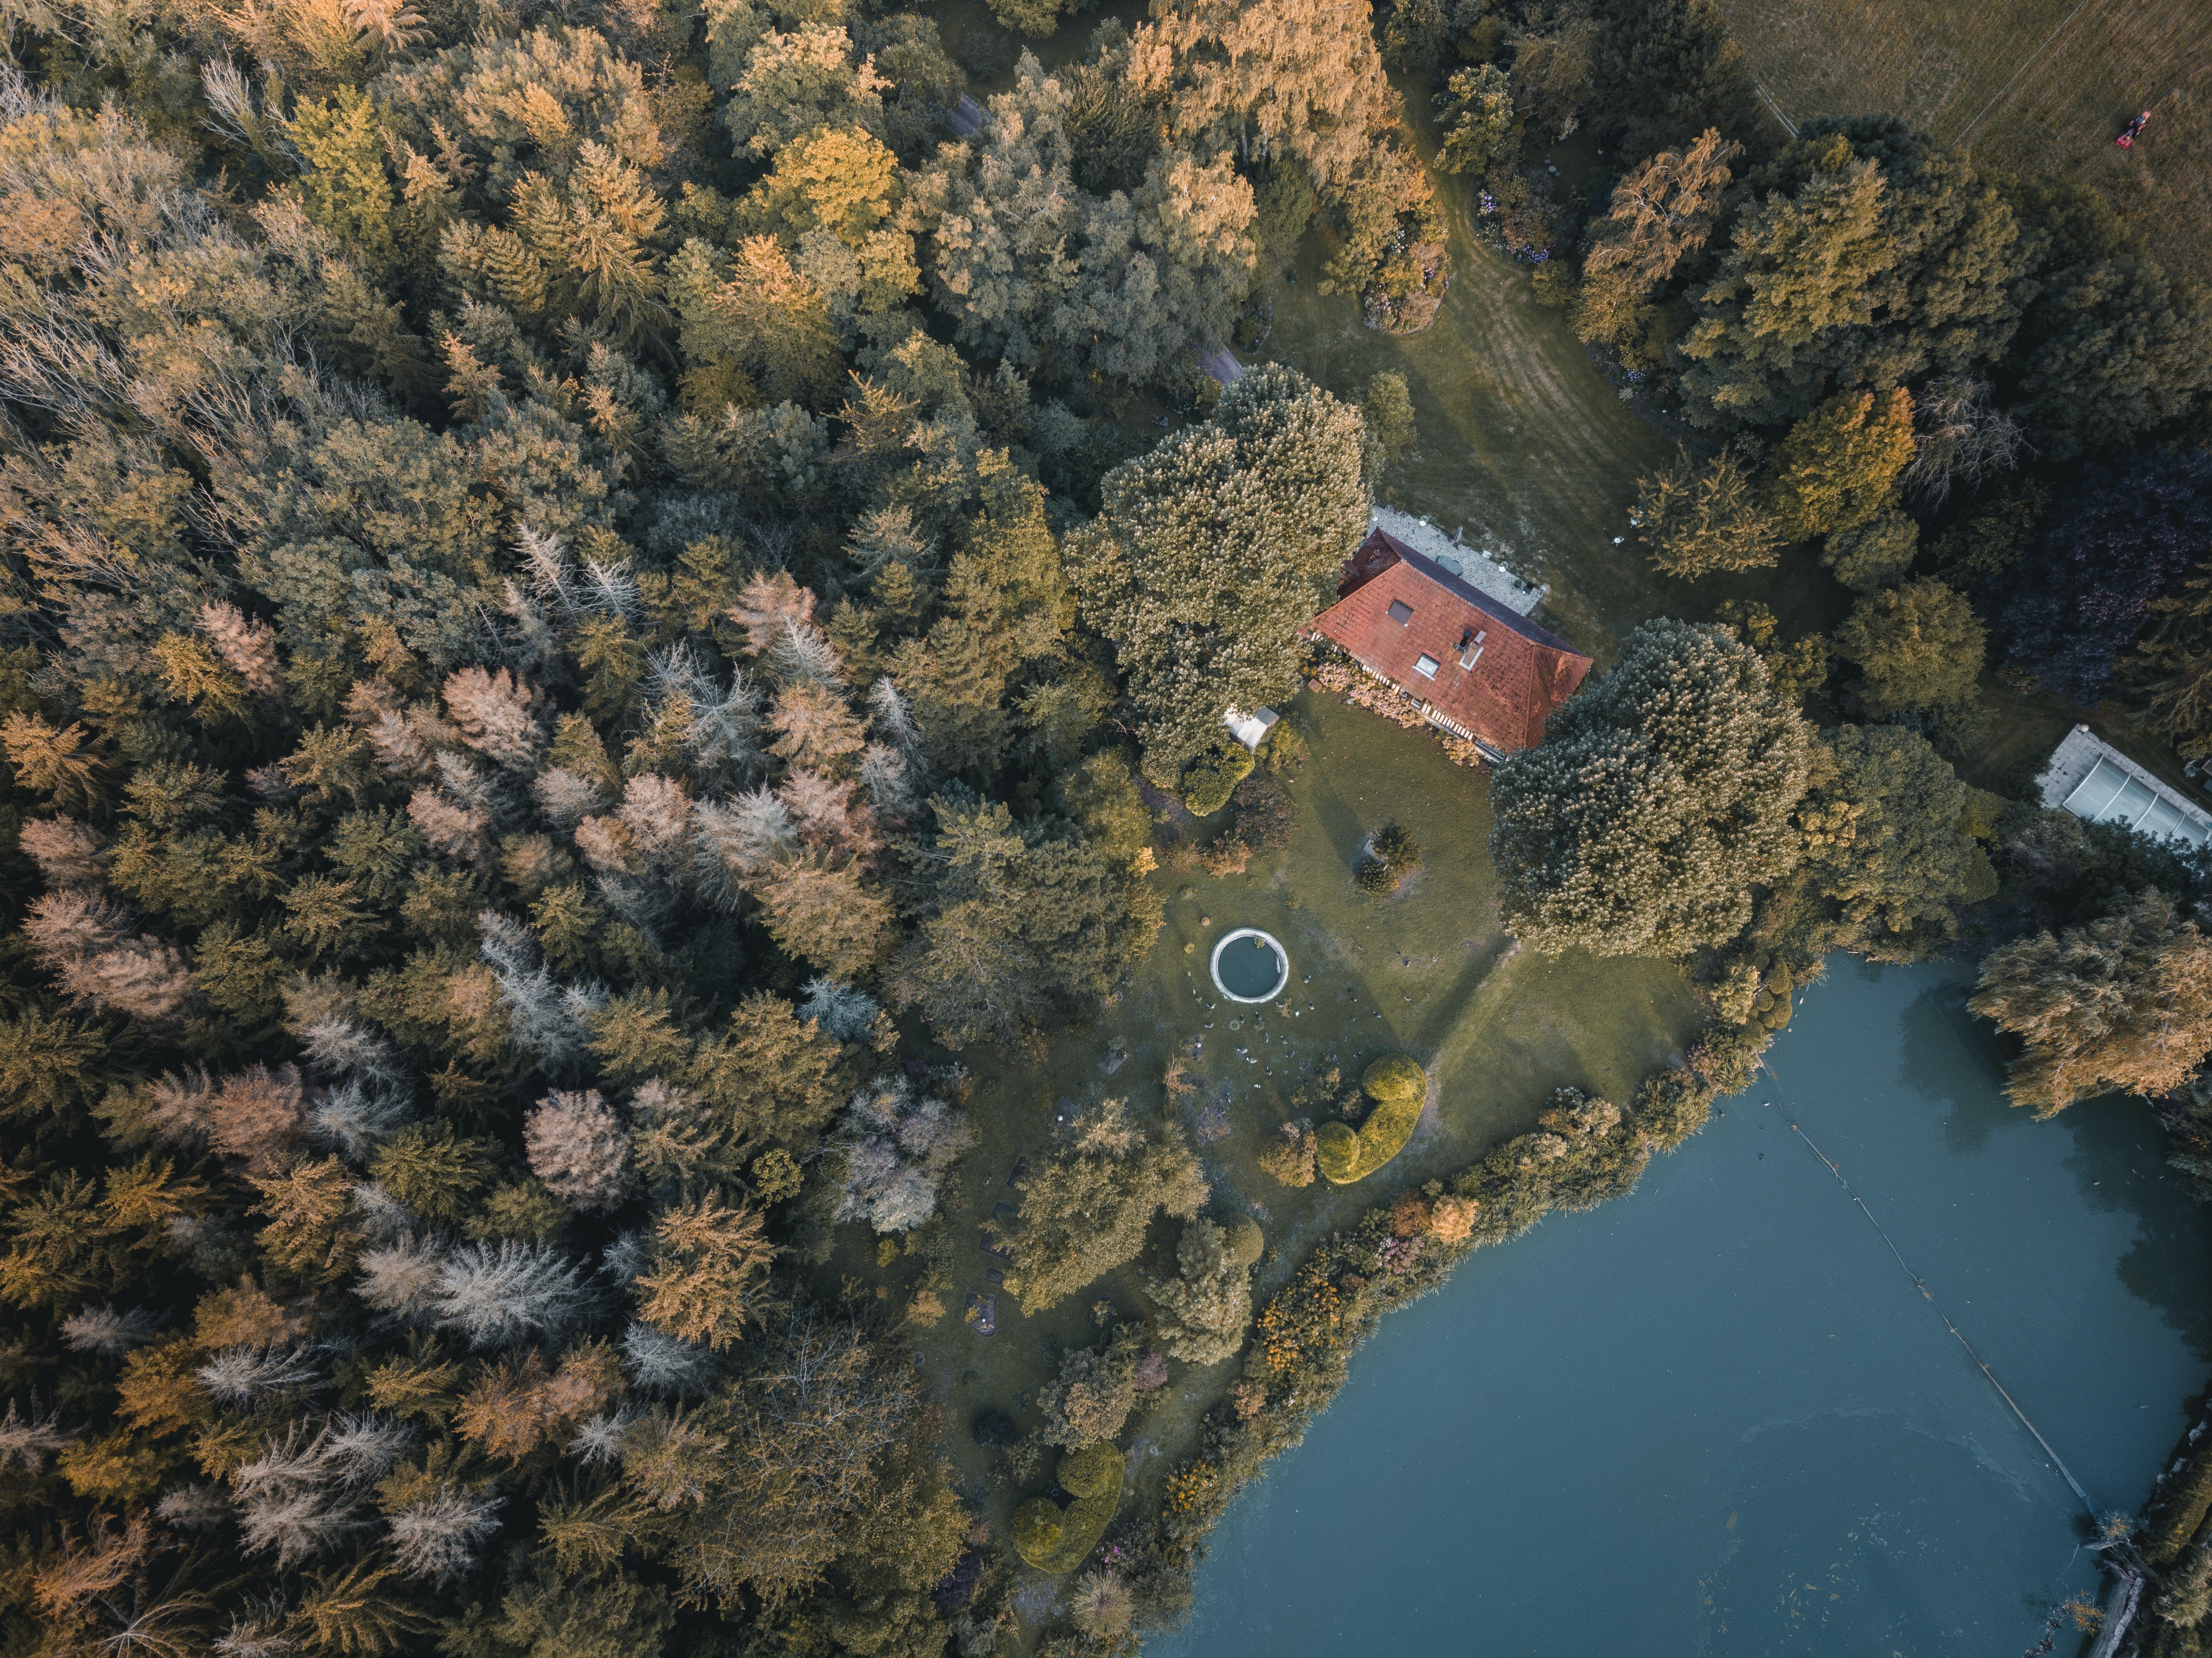 aerial photography on brown mansion near body of water